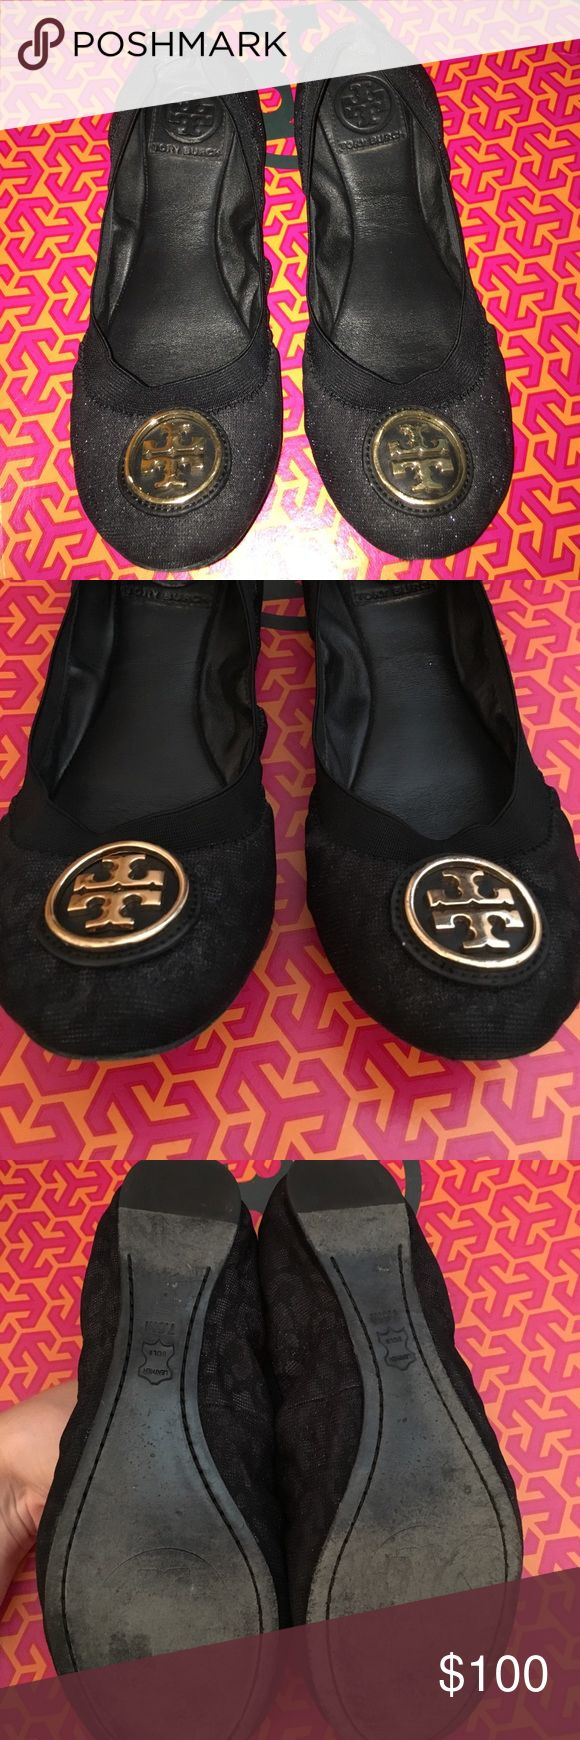 Tory Burch Flats Great flat, black & shiny threaded fabric with a subtle cheetah print. So cute! Adds some fun, but are definitely office appropriate. Minor scuffs on emblem, unnoticeable. These are 7.5, just a tad tight on me as I'm an 8 :( No box, sorry! Tory Burch Shoes Flats & Loafers